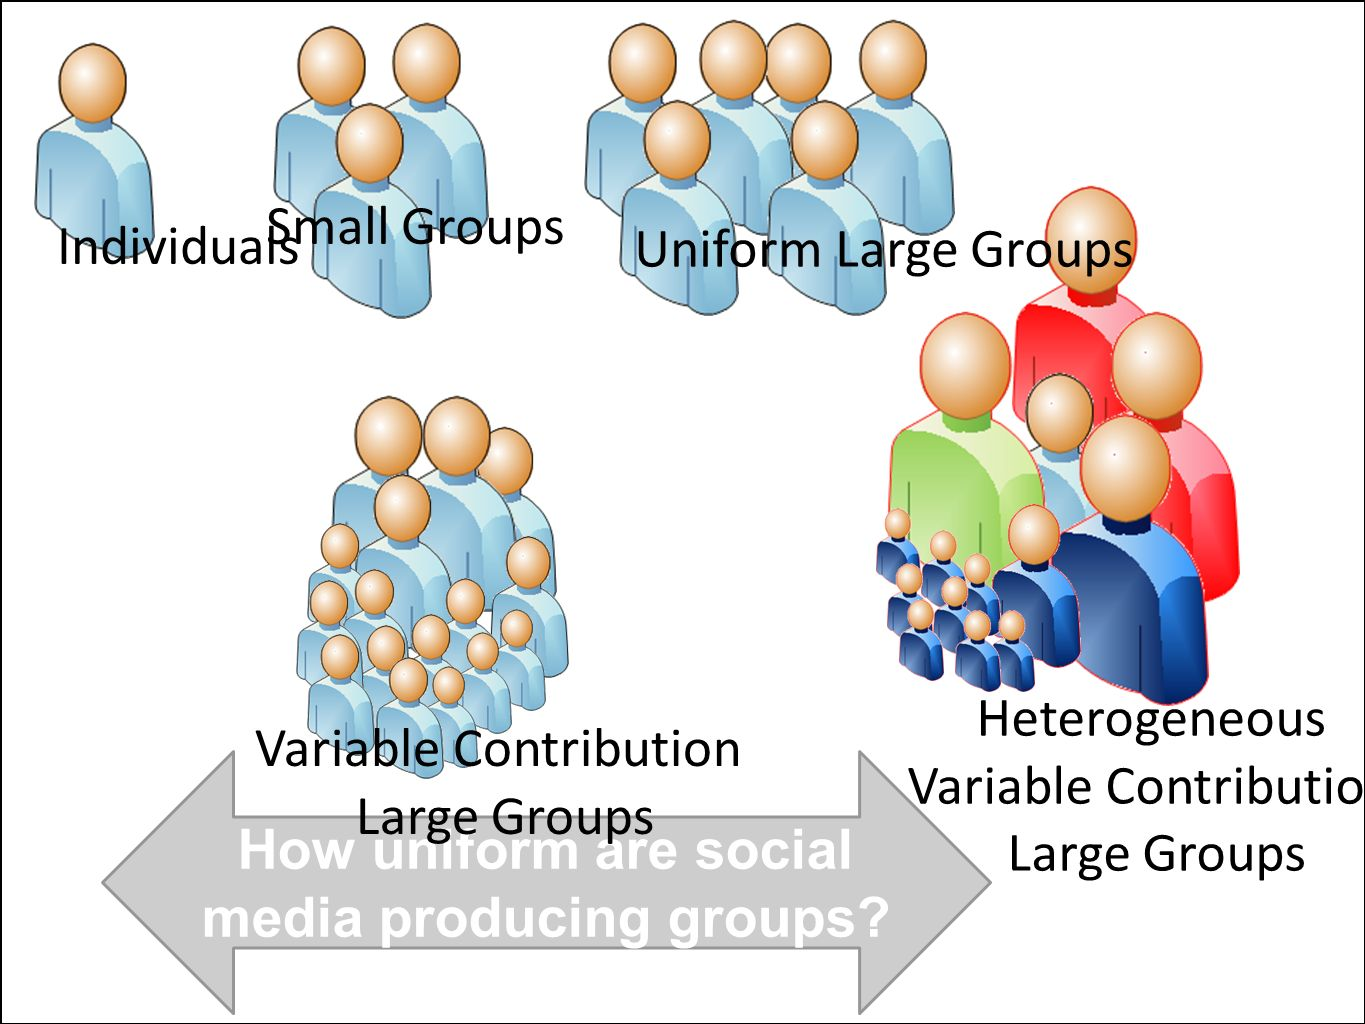 How uniform are social media producing groups